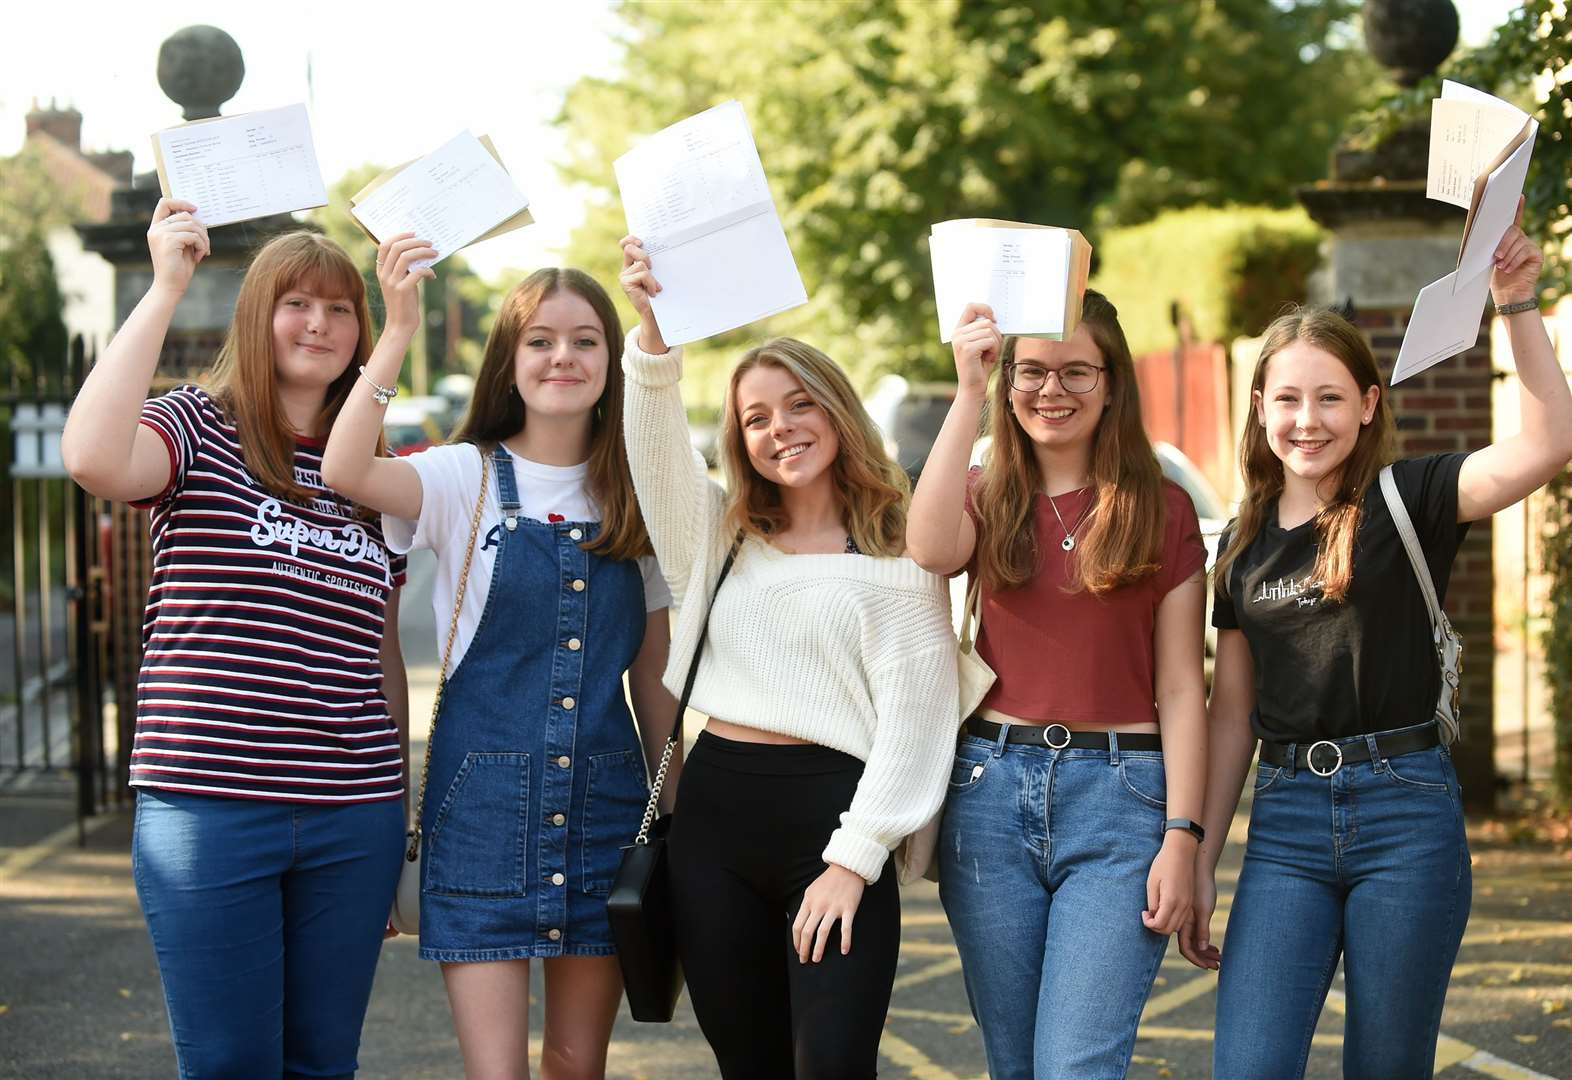 GCSE Results 2019: Pupils in the Bury St Edmunds, Mildenhall, Thetford and Stowmarket areas discover if they have made the grade